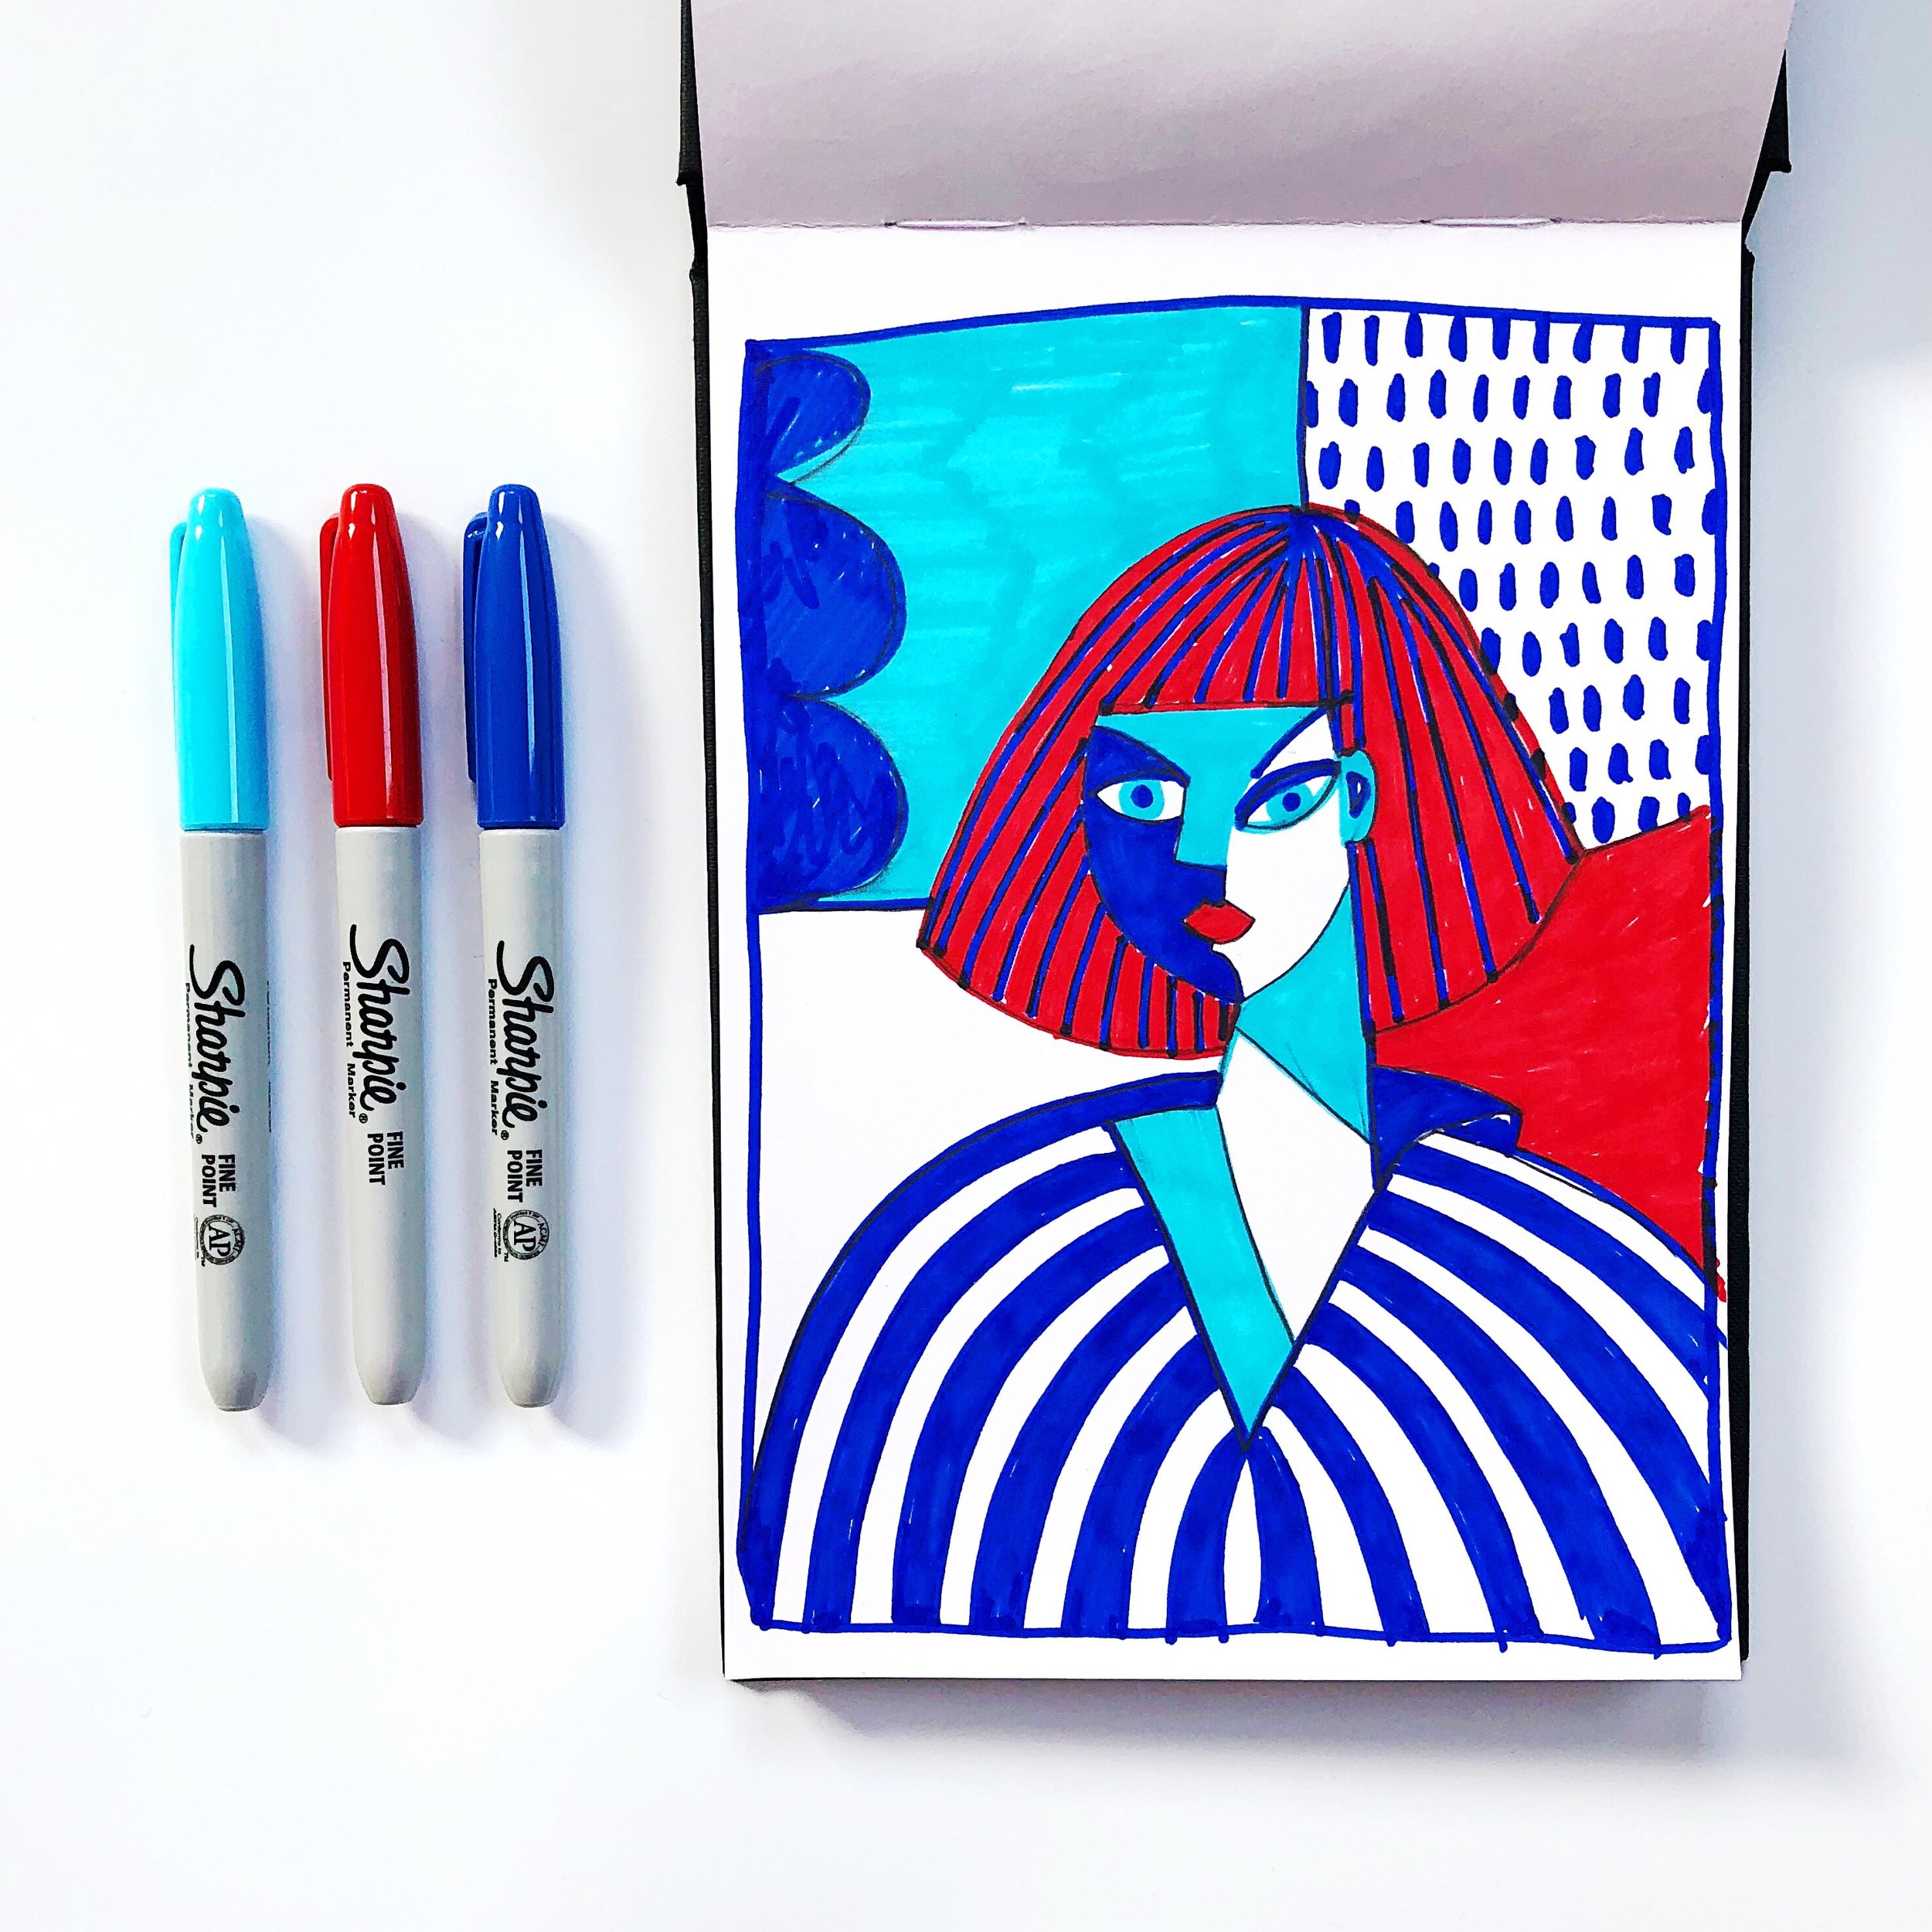 Week 2, day 1 - draw  this Claire Prouvost illustration  in your style and only in red and blue (and in my case giving myself a Sharpie fume headache in the process!!).